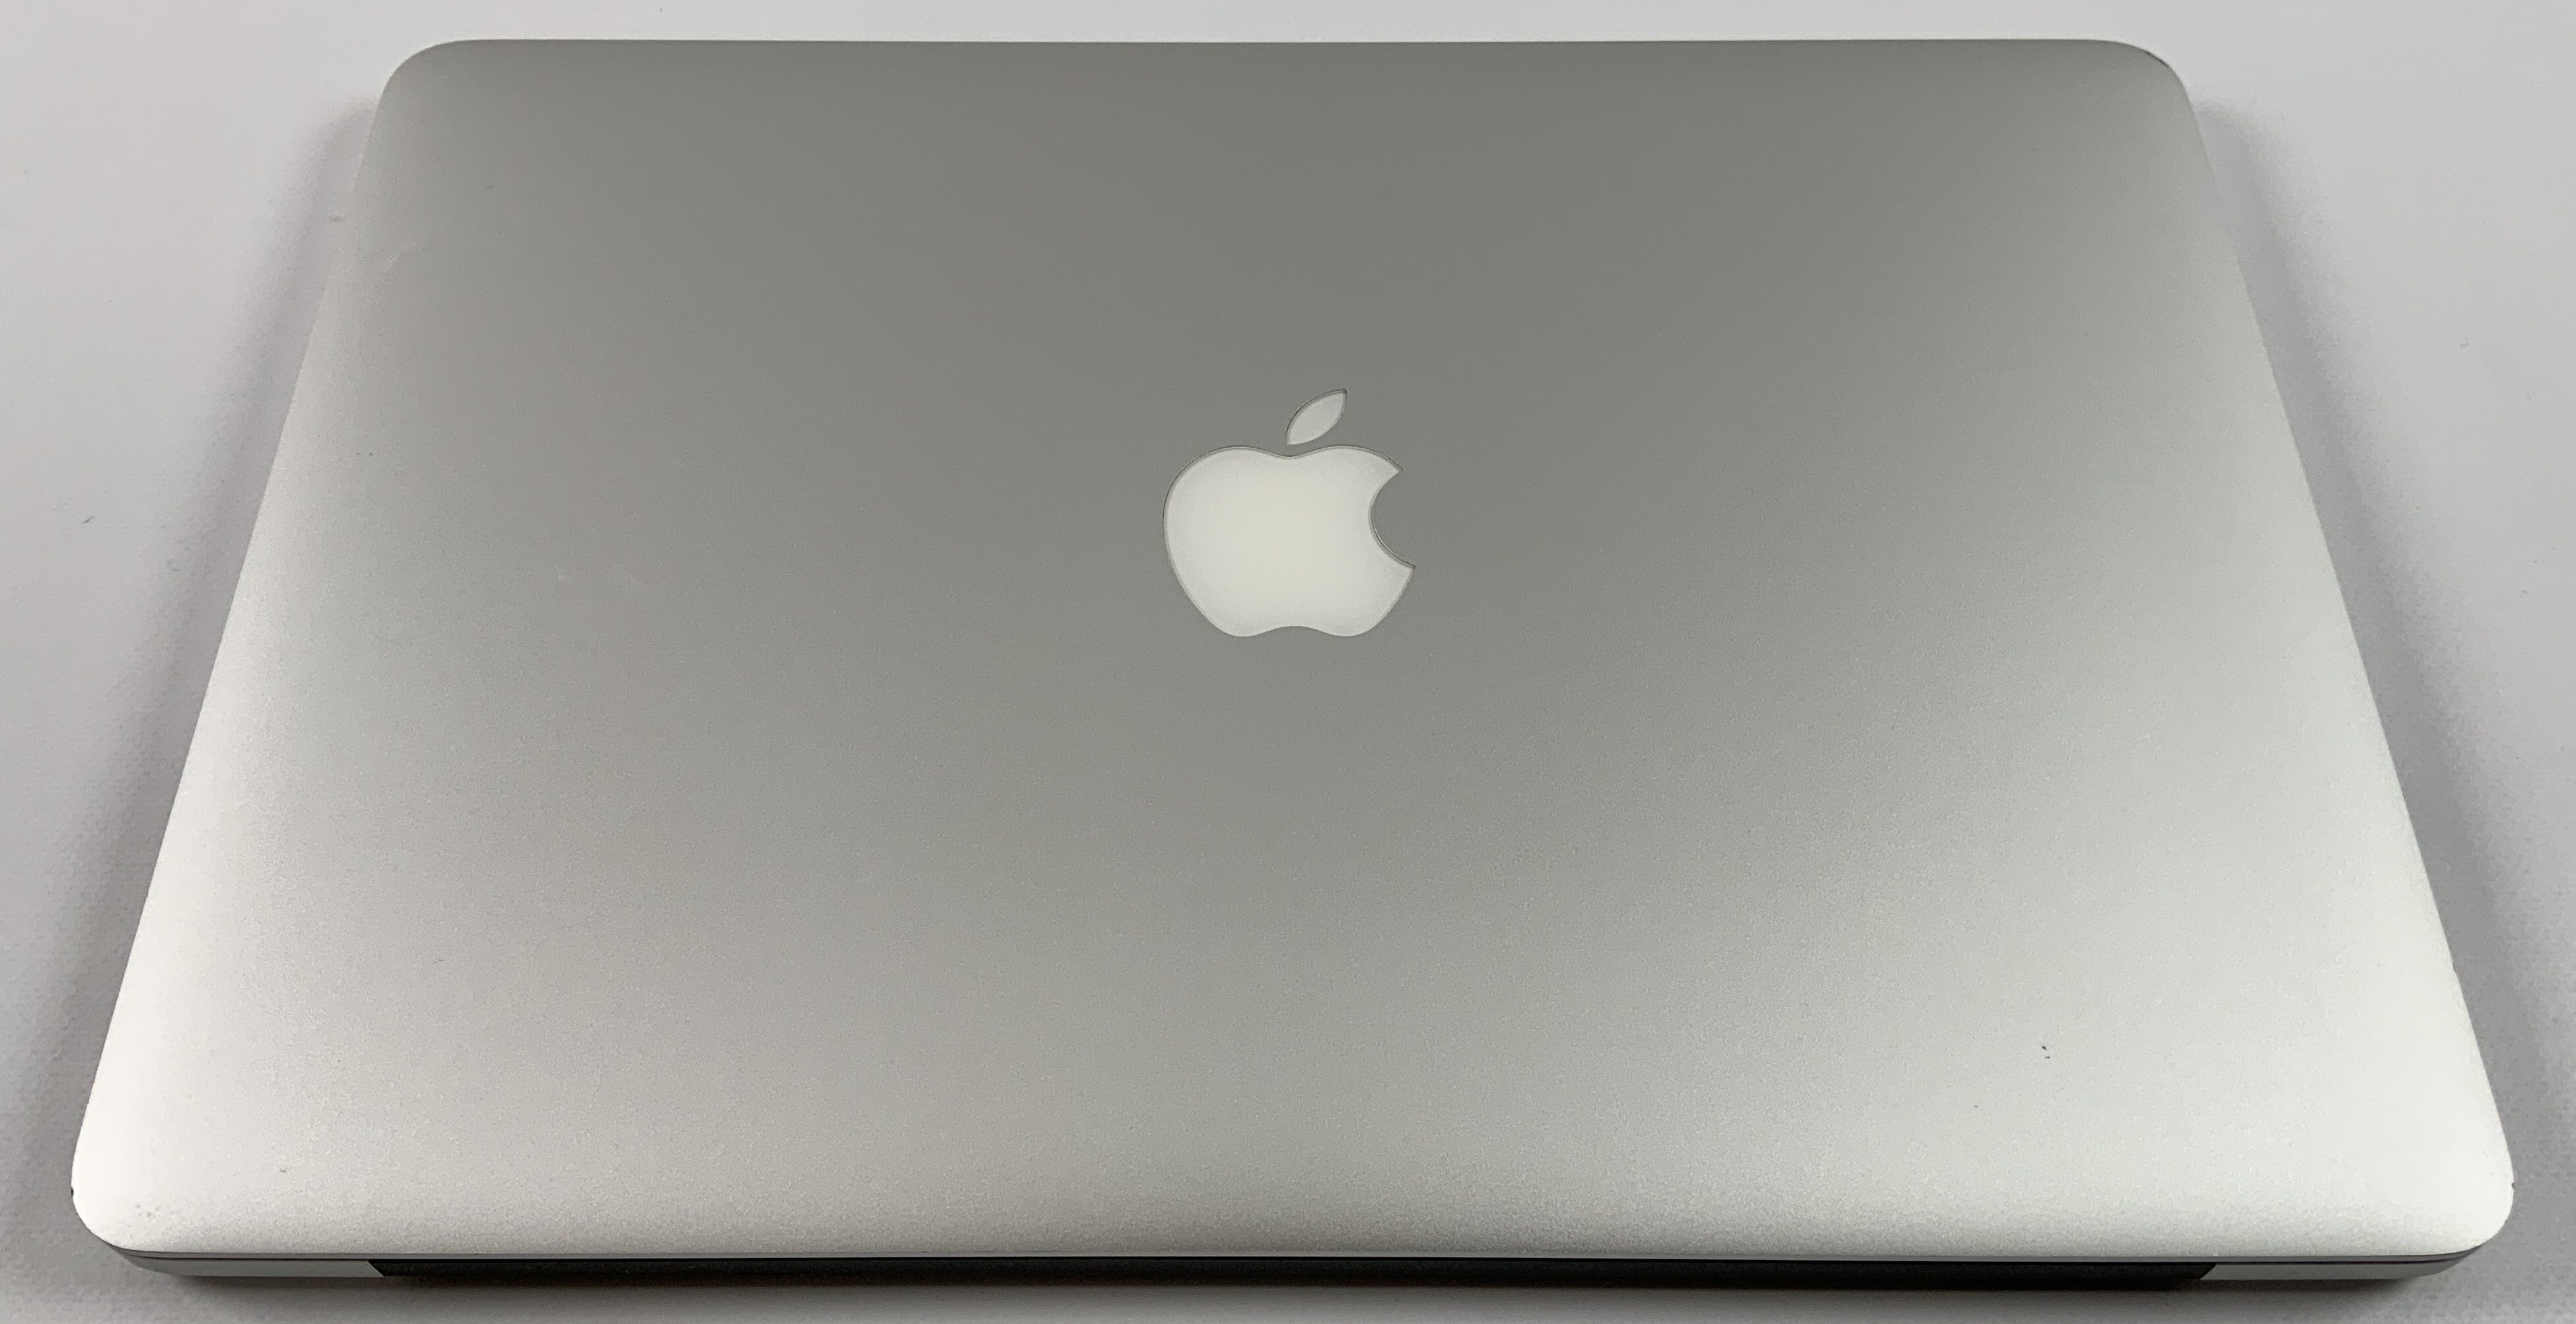 "MacBook Pro Retina 13"" Early 2015 (Intel Core i5 2.9 GHz 8 GB RAM 512 GB SSD), Intel Core i5 2.9 GHz, 8 GB RAM, 512 GB SSD, imagen 2"